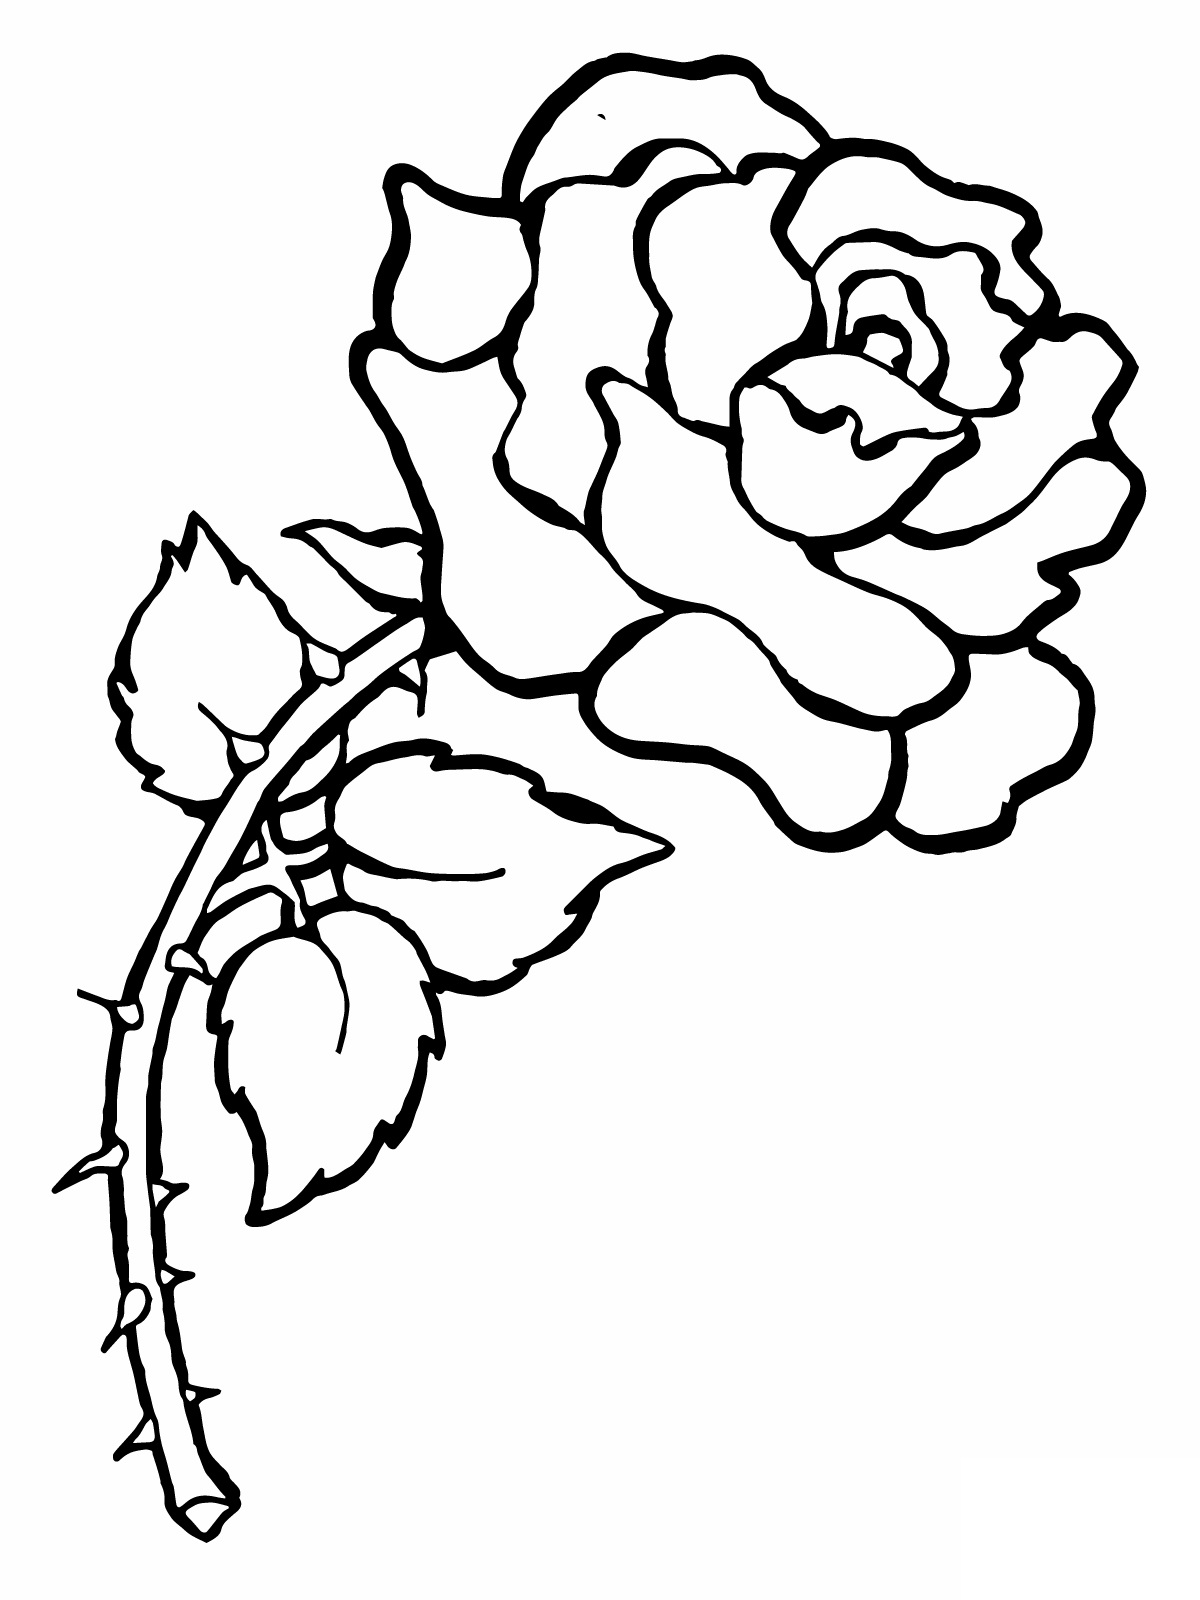 free printable rose coloring pages free roses printable adult coloring page the graphics fairy free coloring pages rose printable